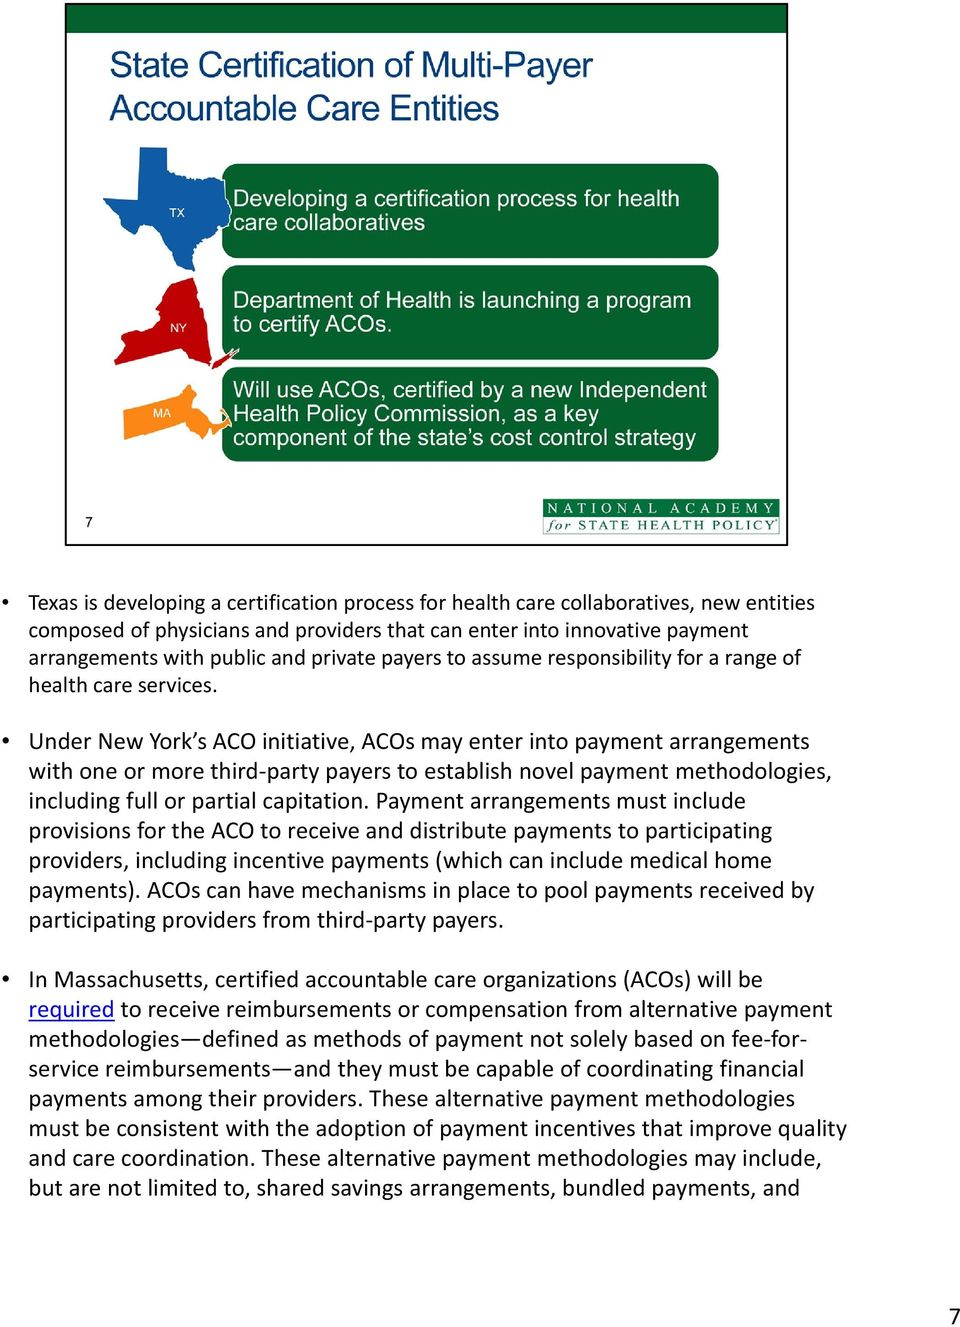 Under New York s ACO initiative, ACOs may enter into payment arrangements with one or more third party payers to establish novel payment methodologies, including full or partial capitation.